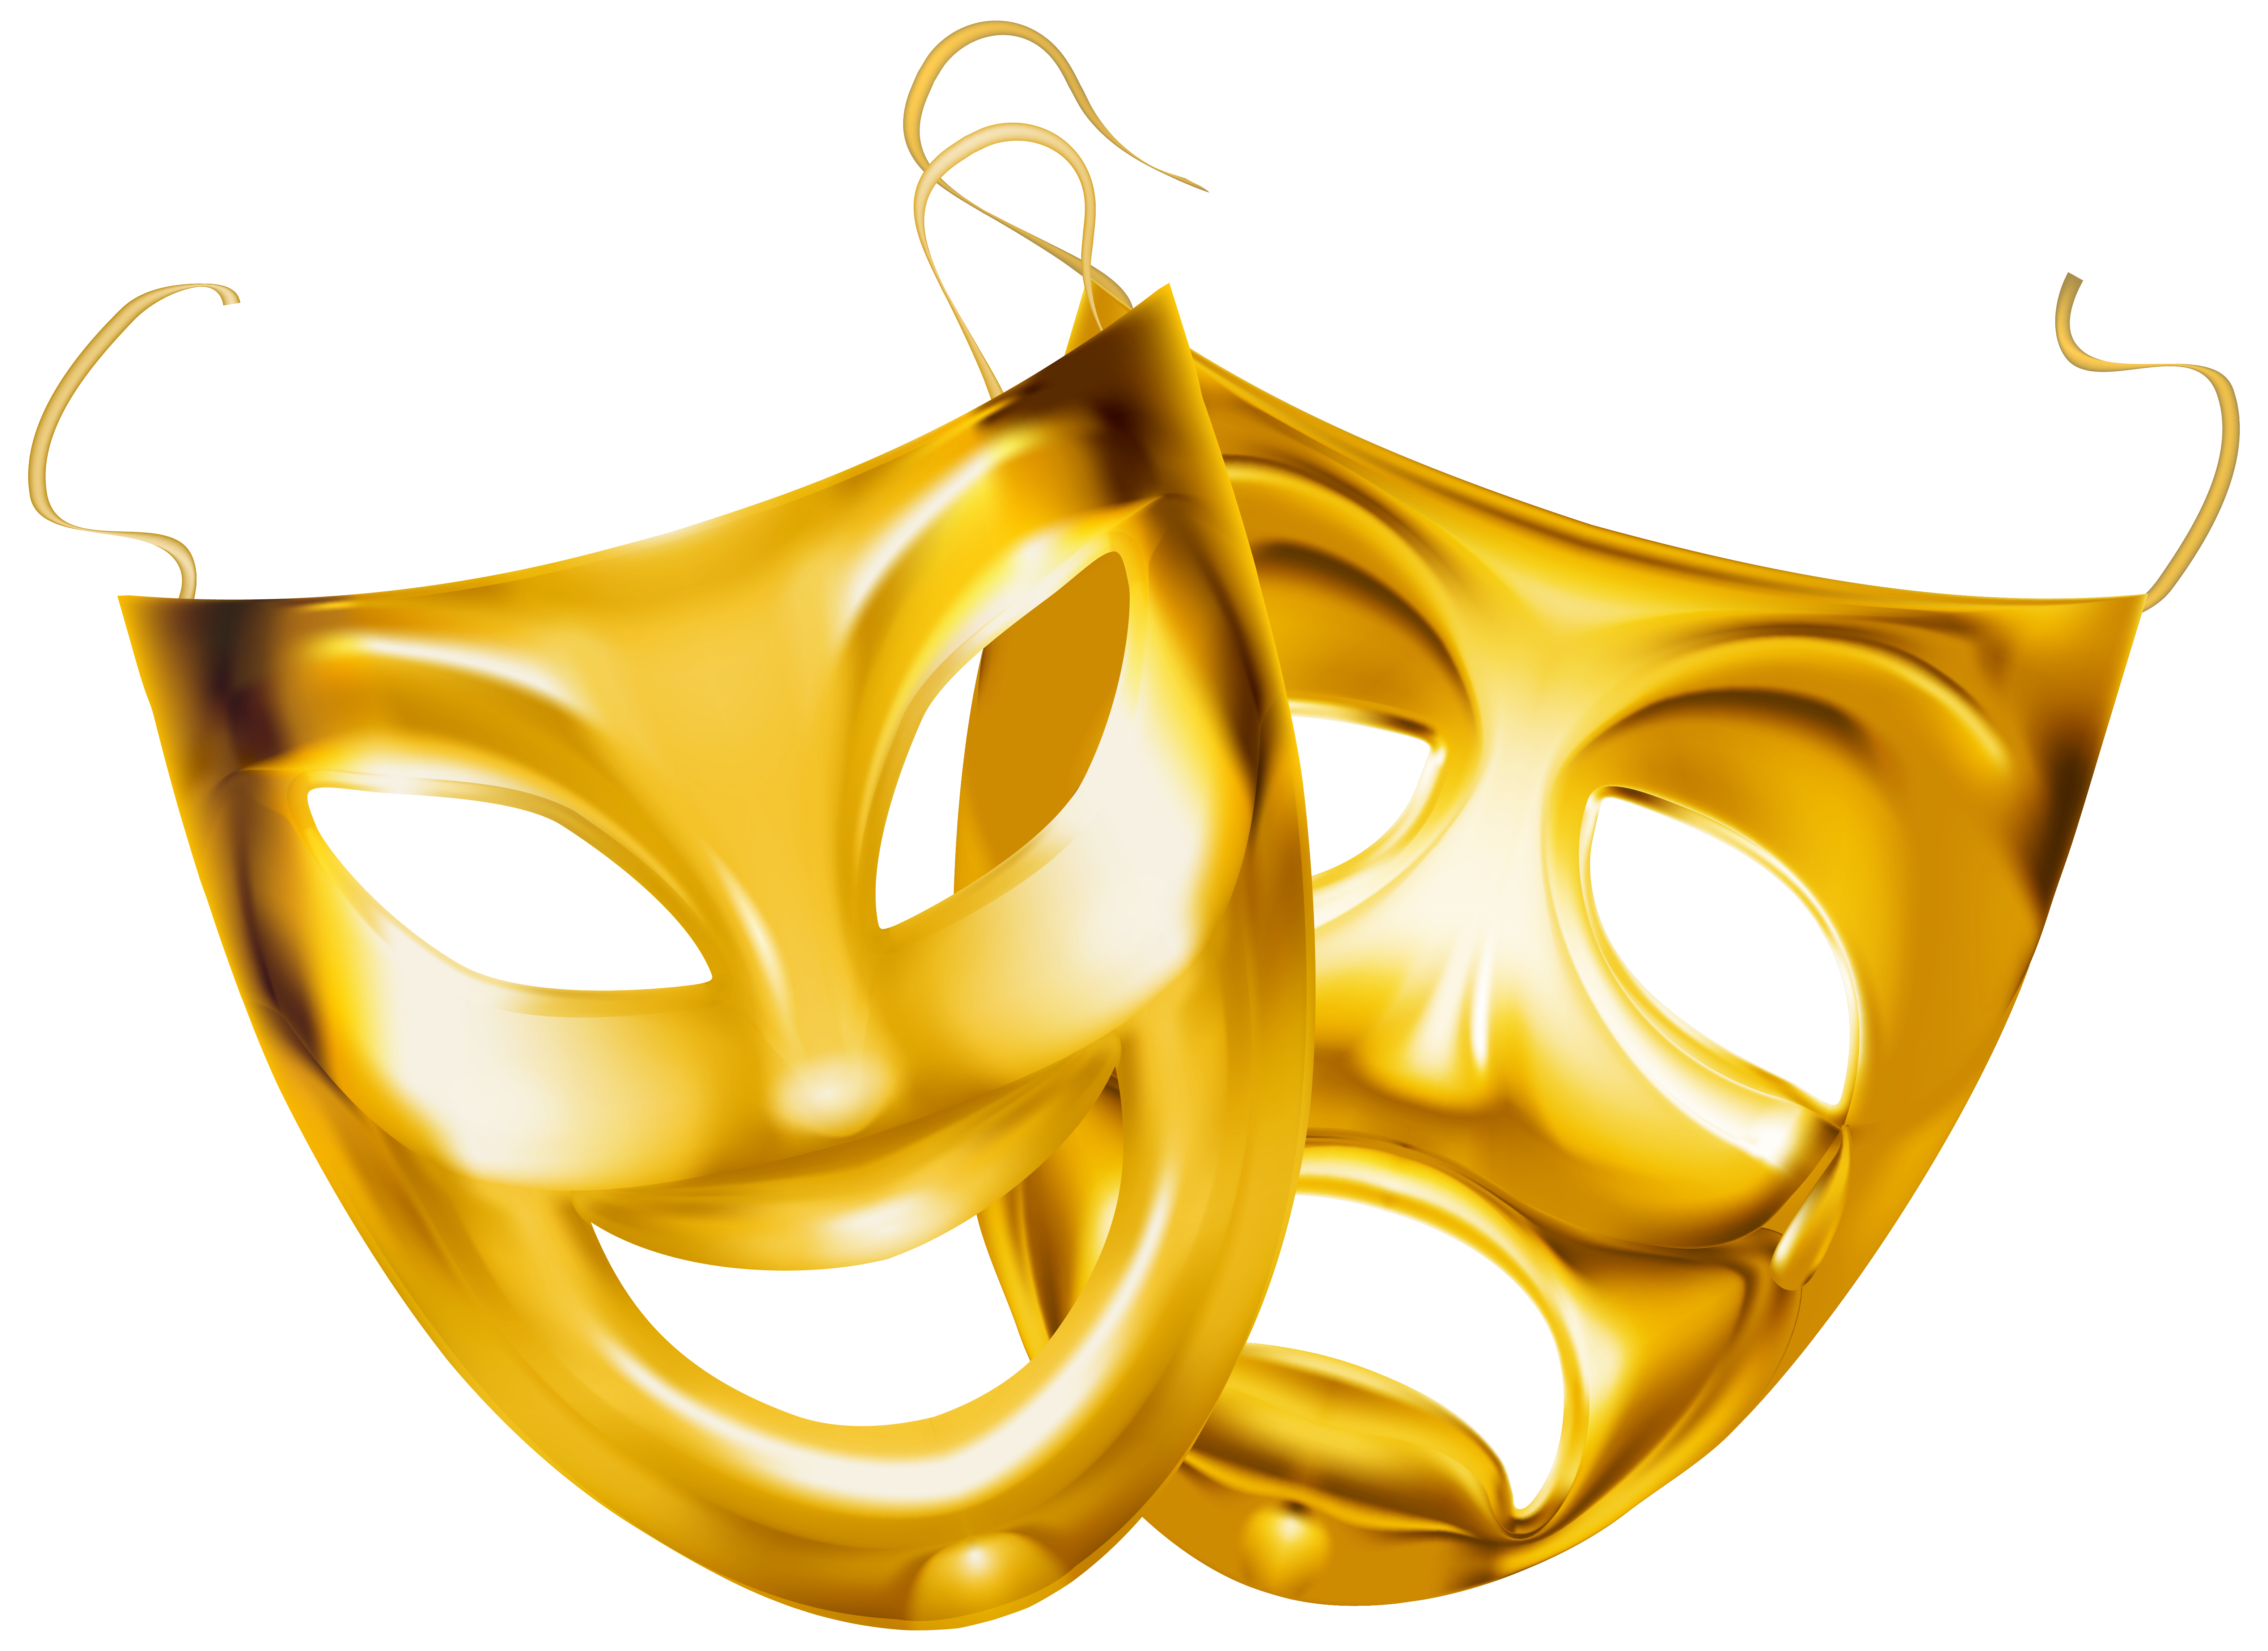 Theatre clipart logo free. Drama mask png free download